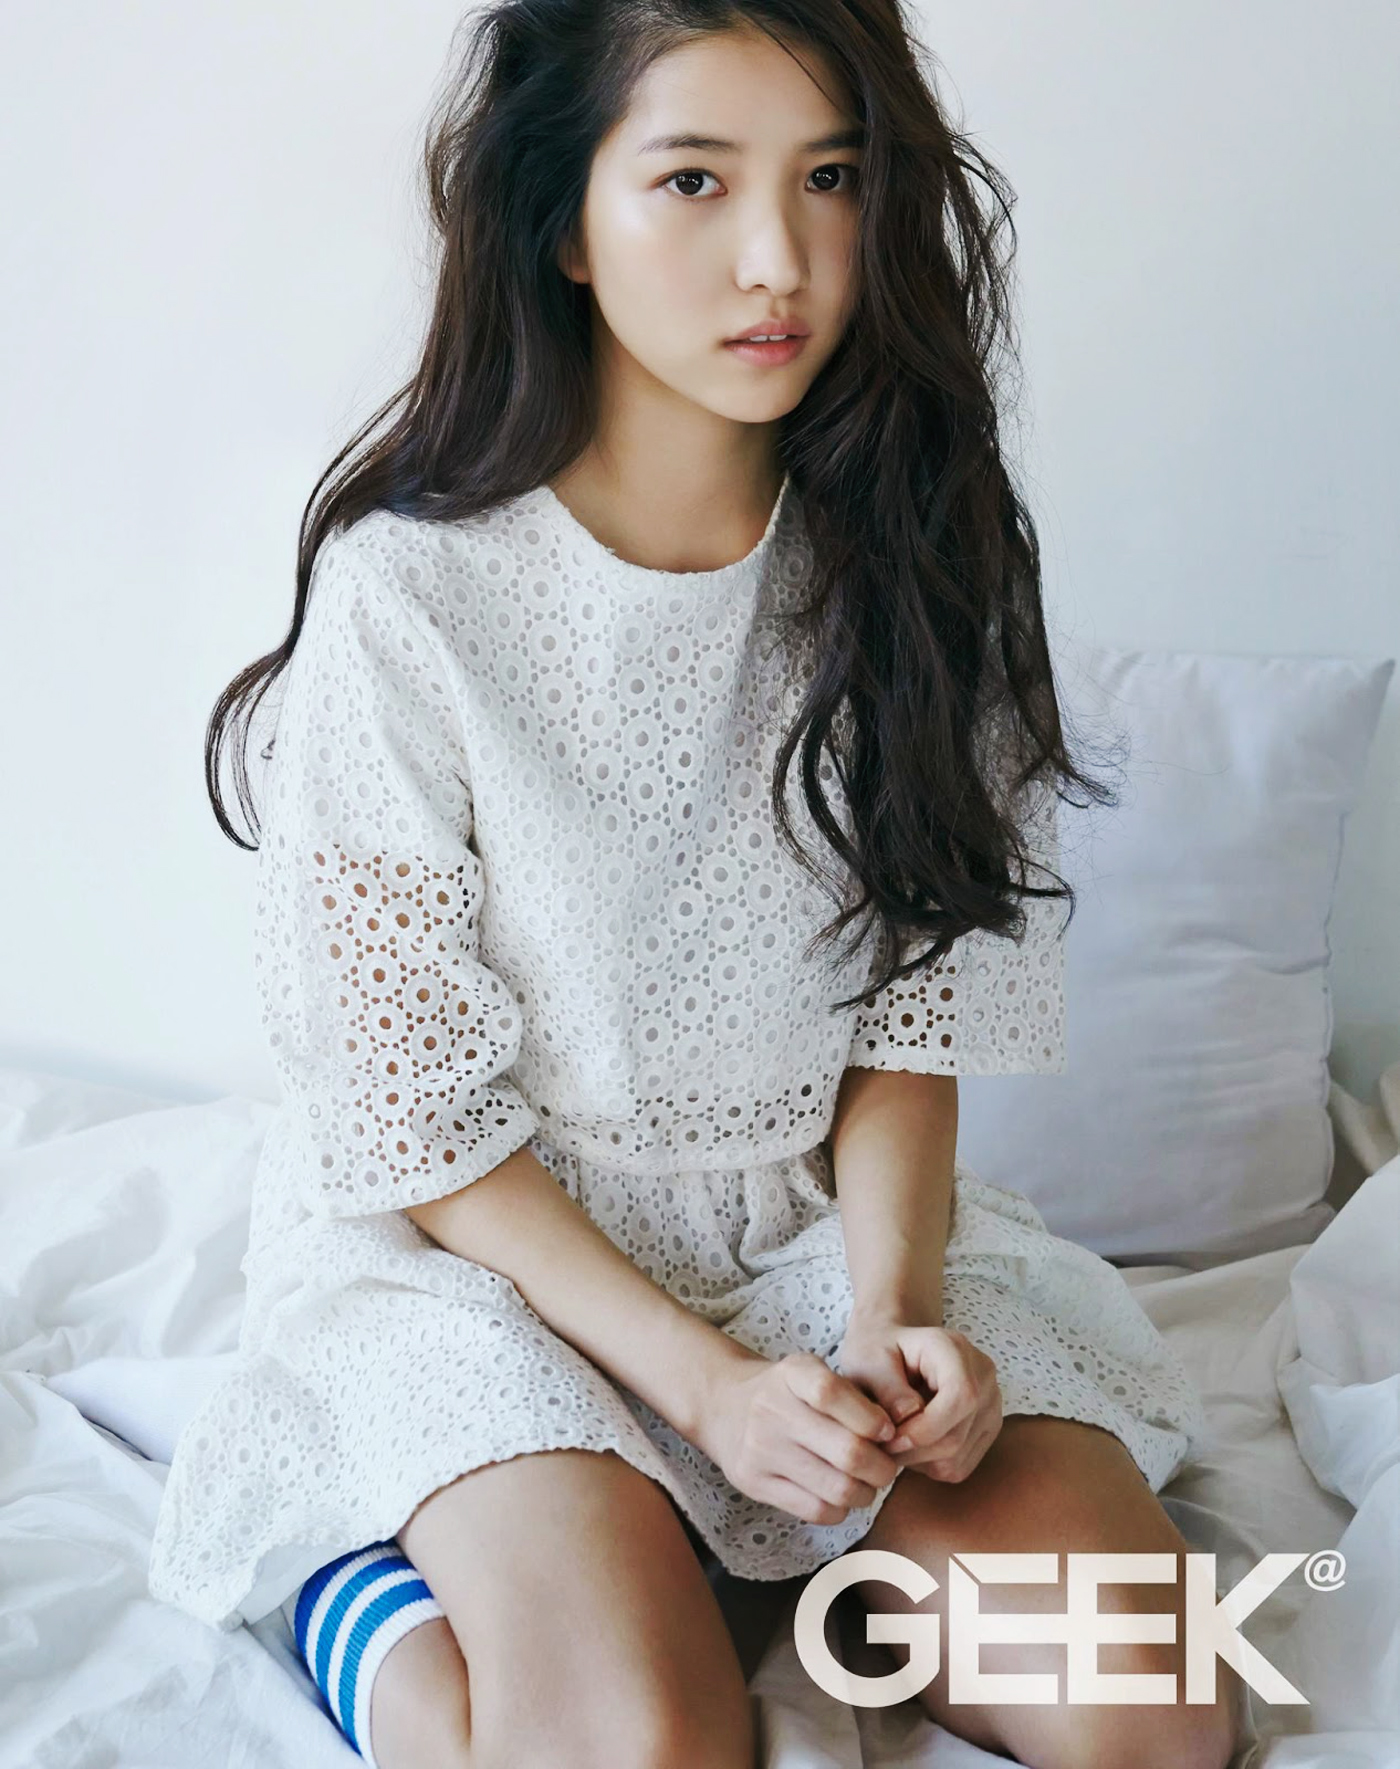 Sowon‬ G-Friend for GEEK Magazine